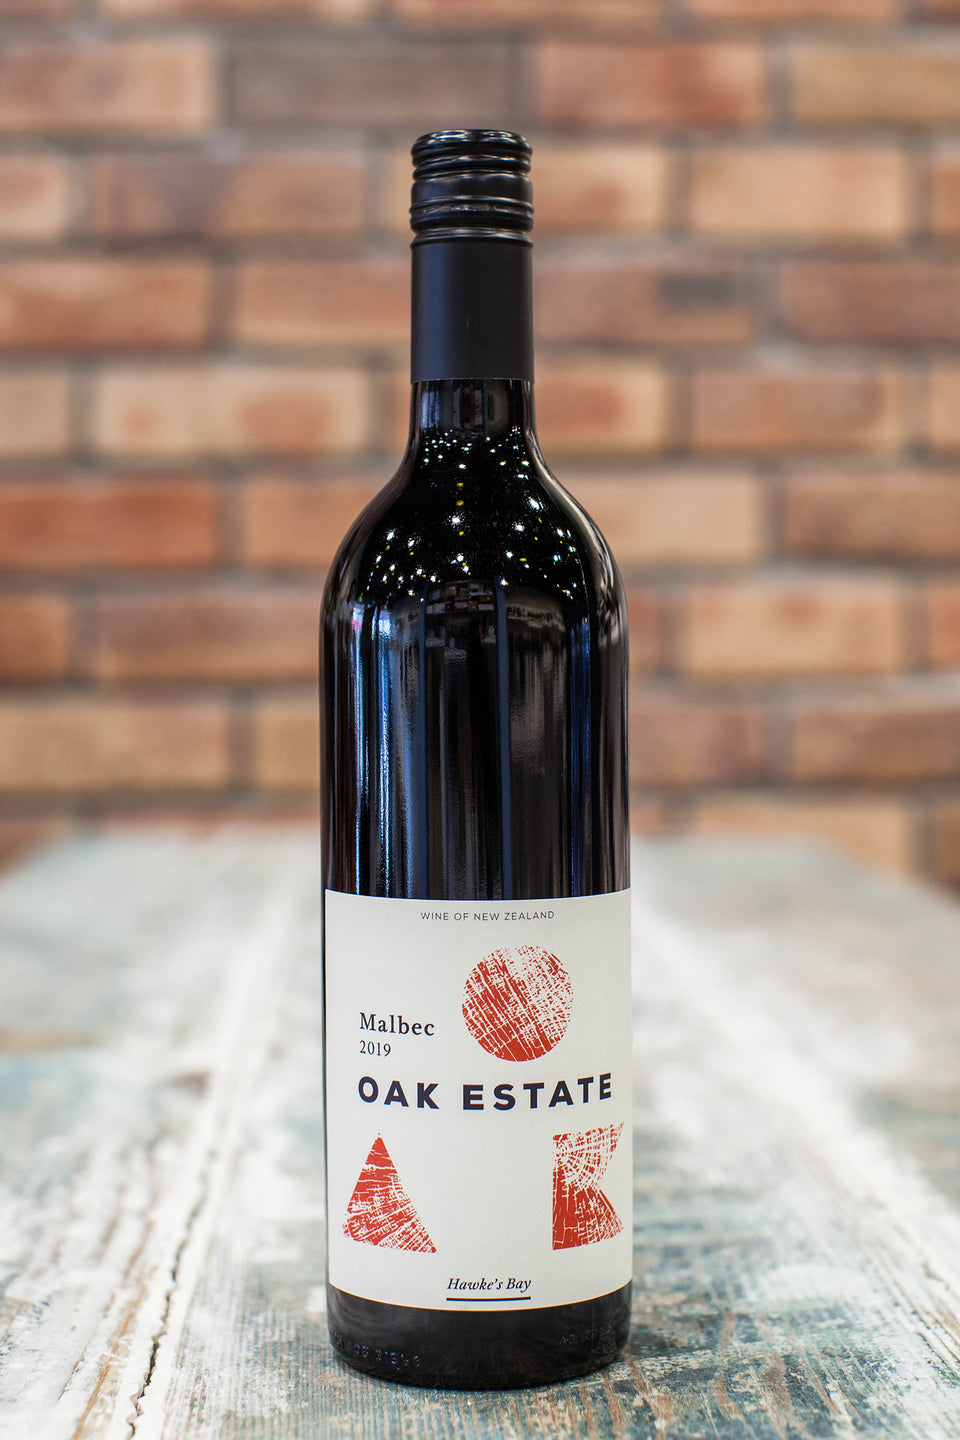 2019 Oak Estate Malbec, Hawke's Bay